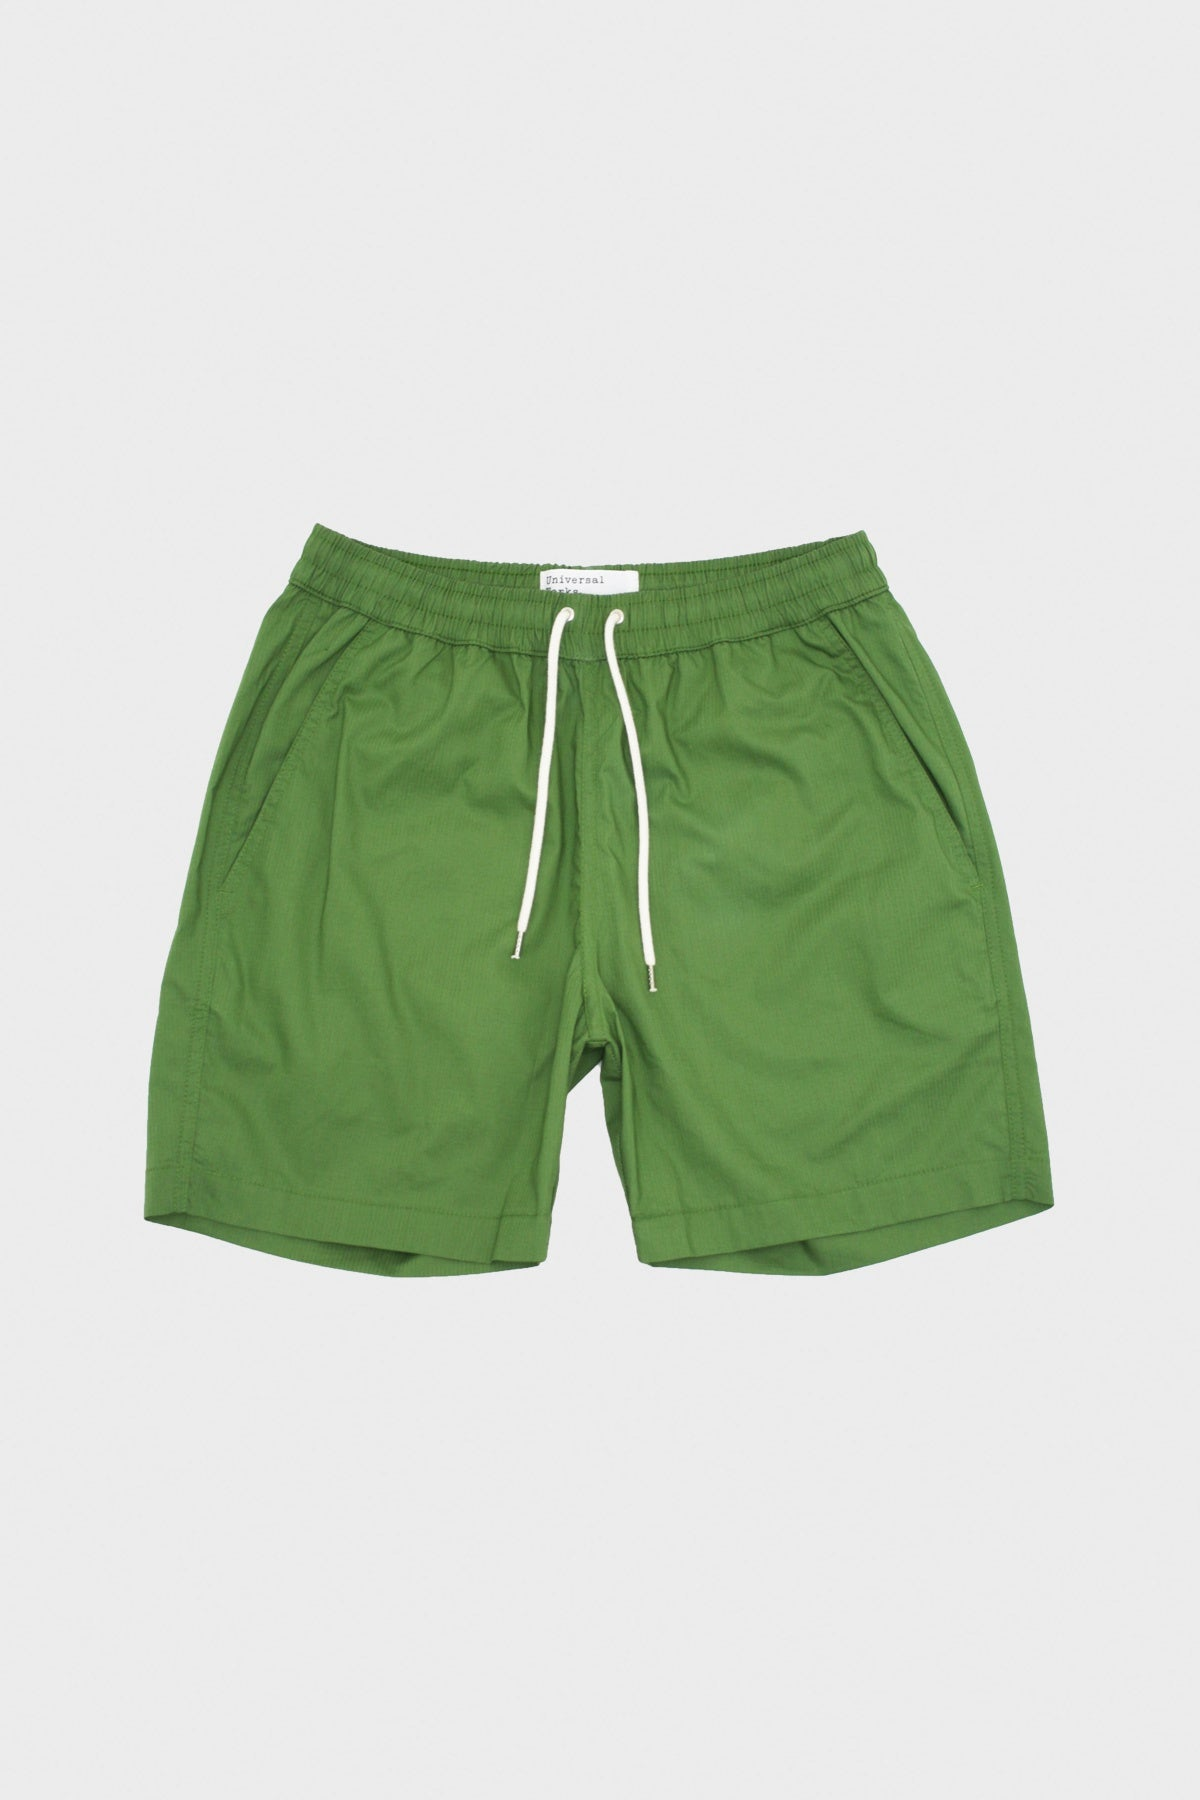 Universal Works - Beach Short Ripstop Cotton - Olive - Canoe Club